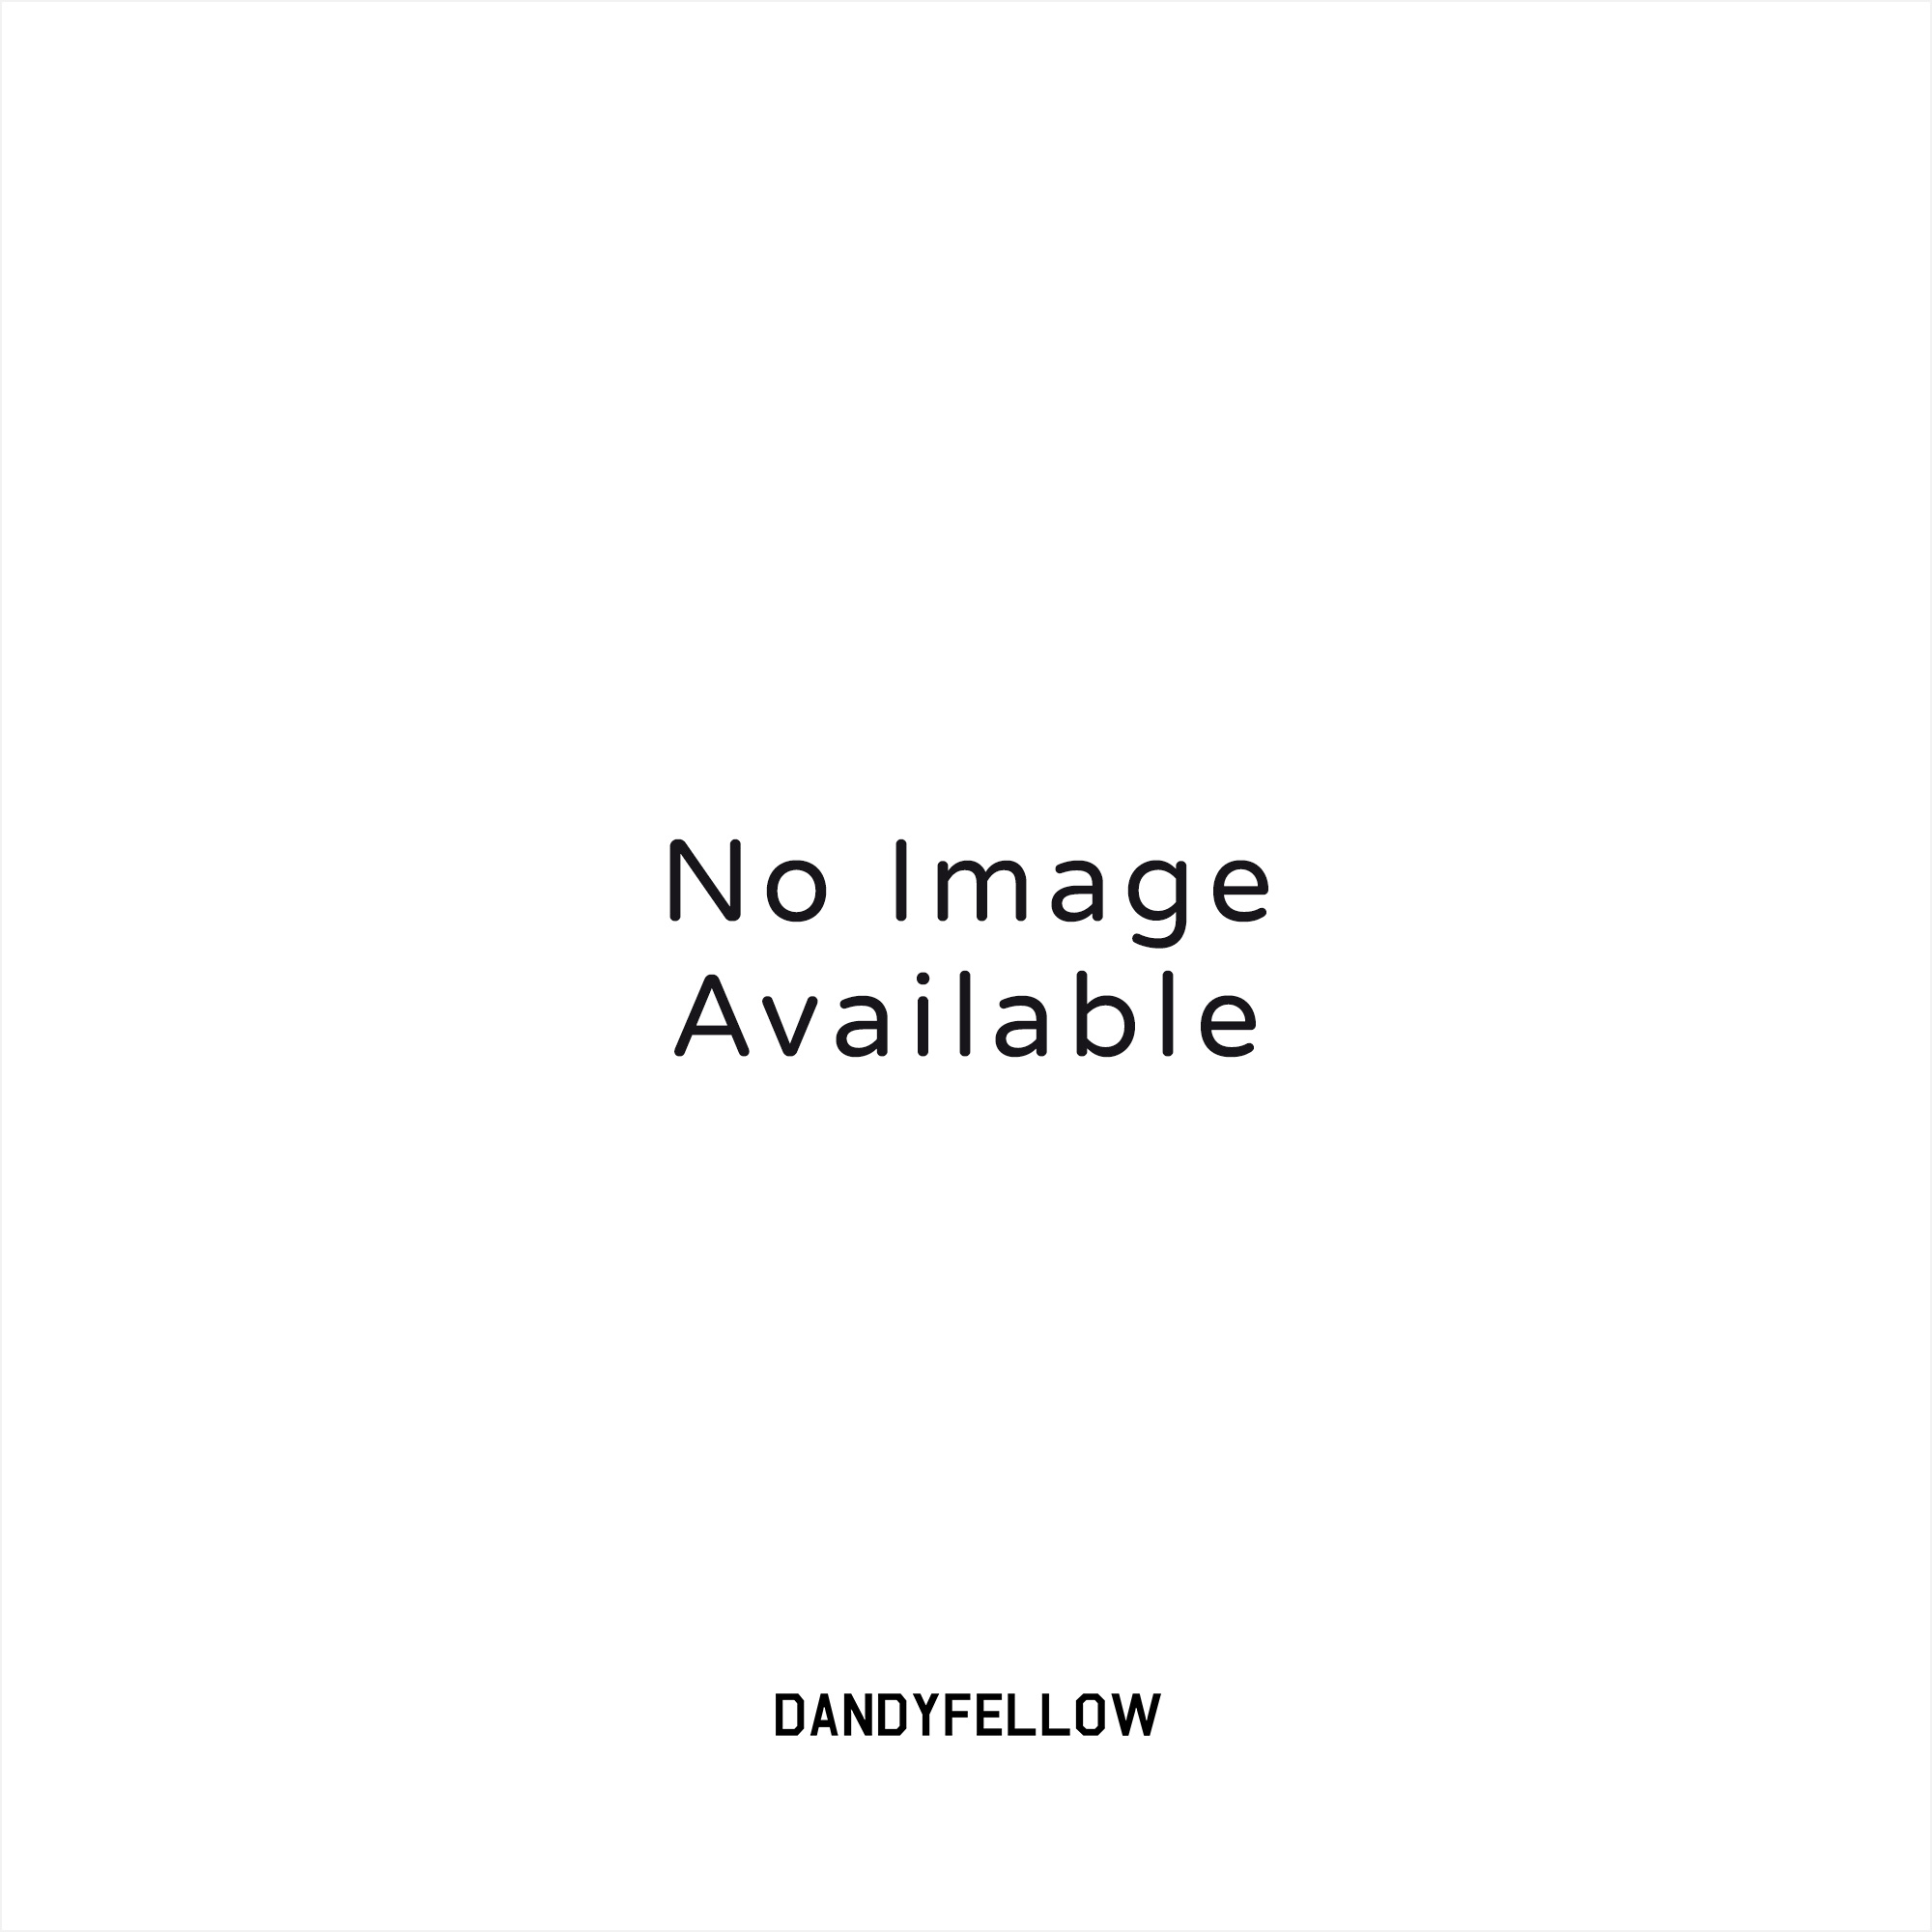 Paul Smith Loopback-Cotton Navy Sweatshirt PRXD027N